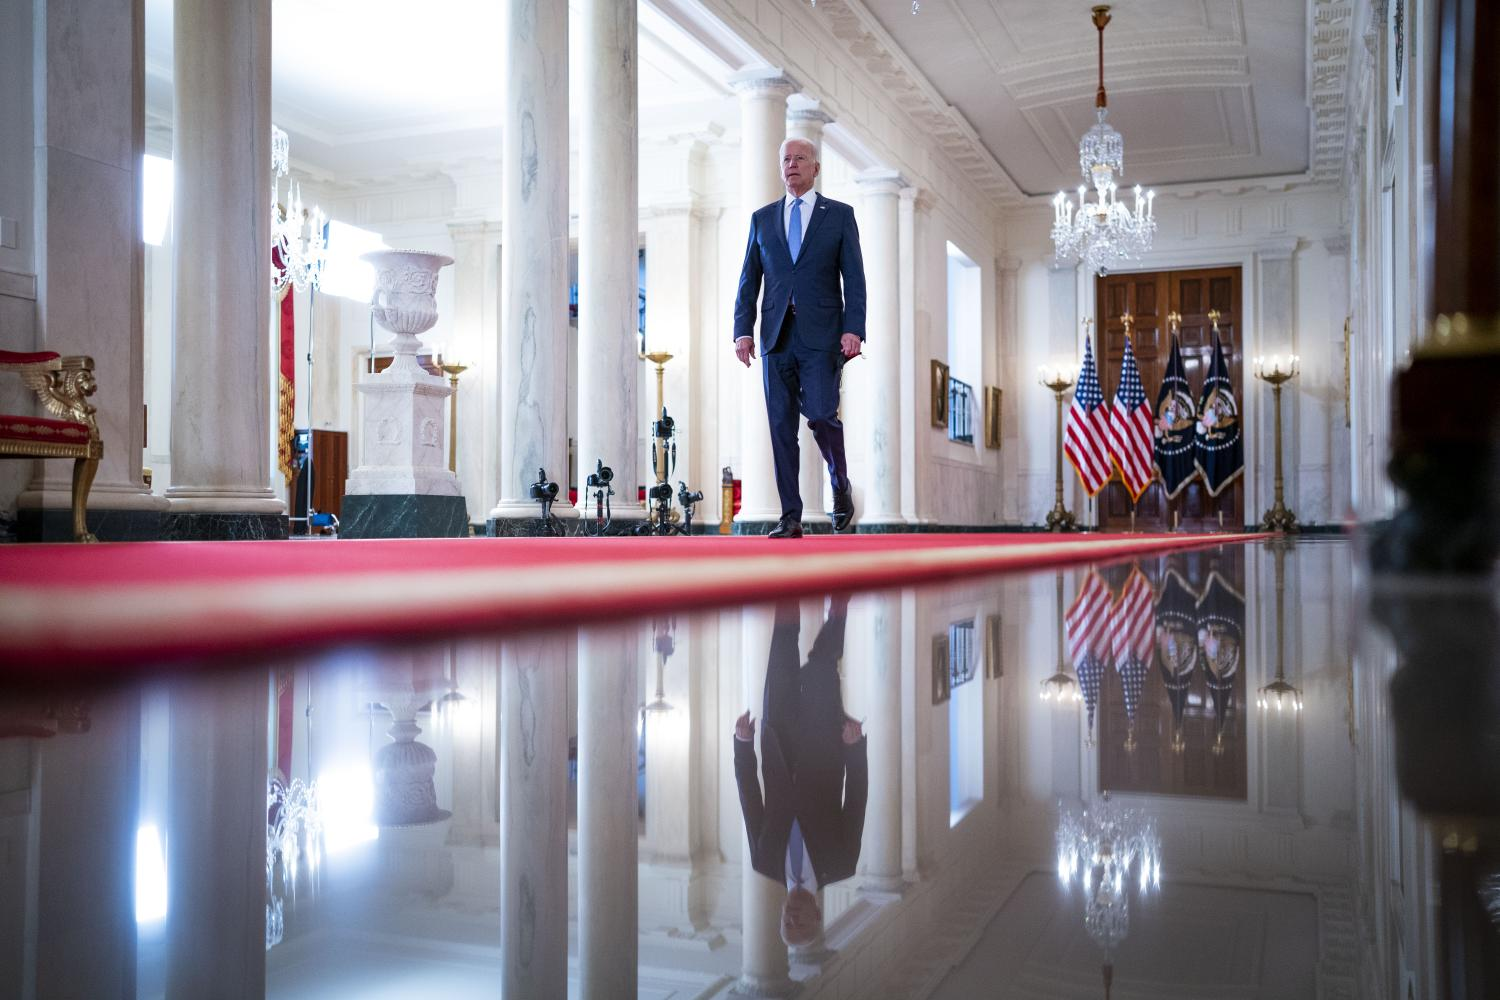 US President Joe Biden arrives to deliver remarks on the end of the war in Afghanistan at the White House in Washington DC on Aug 31. A Biden doctrine is emerging of a foreign policy that avoids the aggressive tactics of 'forever wars' and nation building.NYT